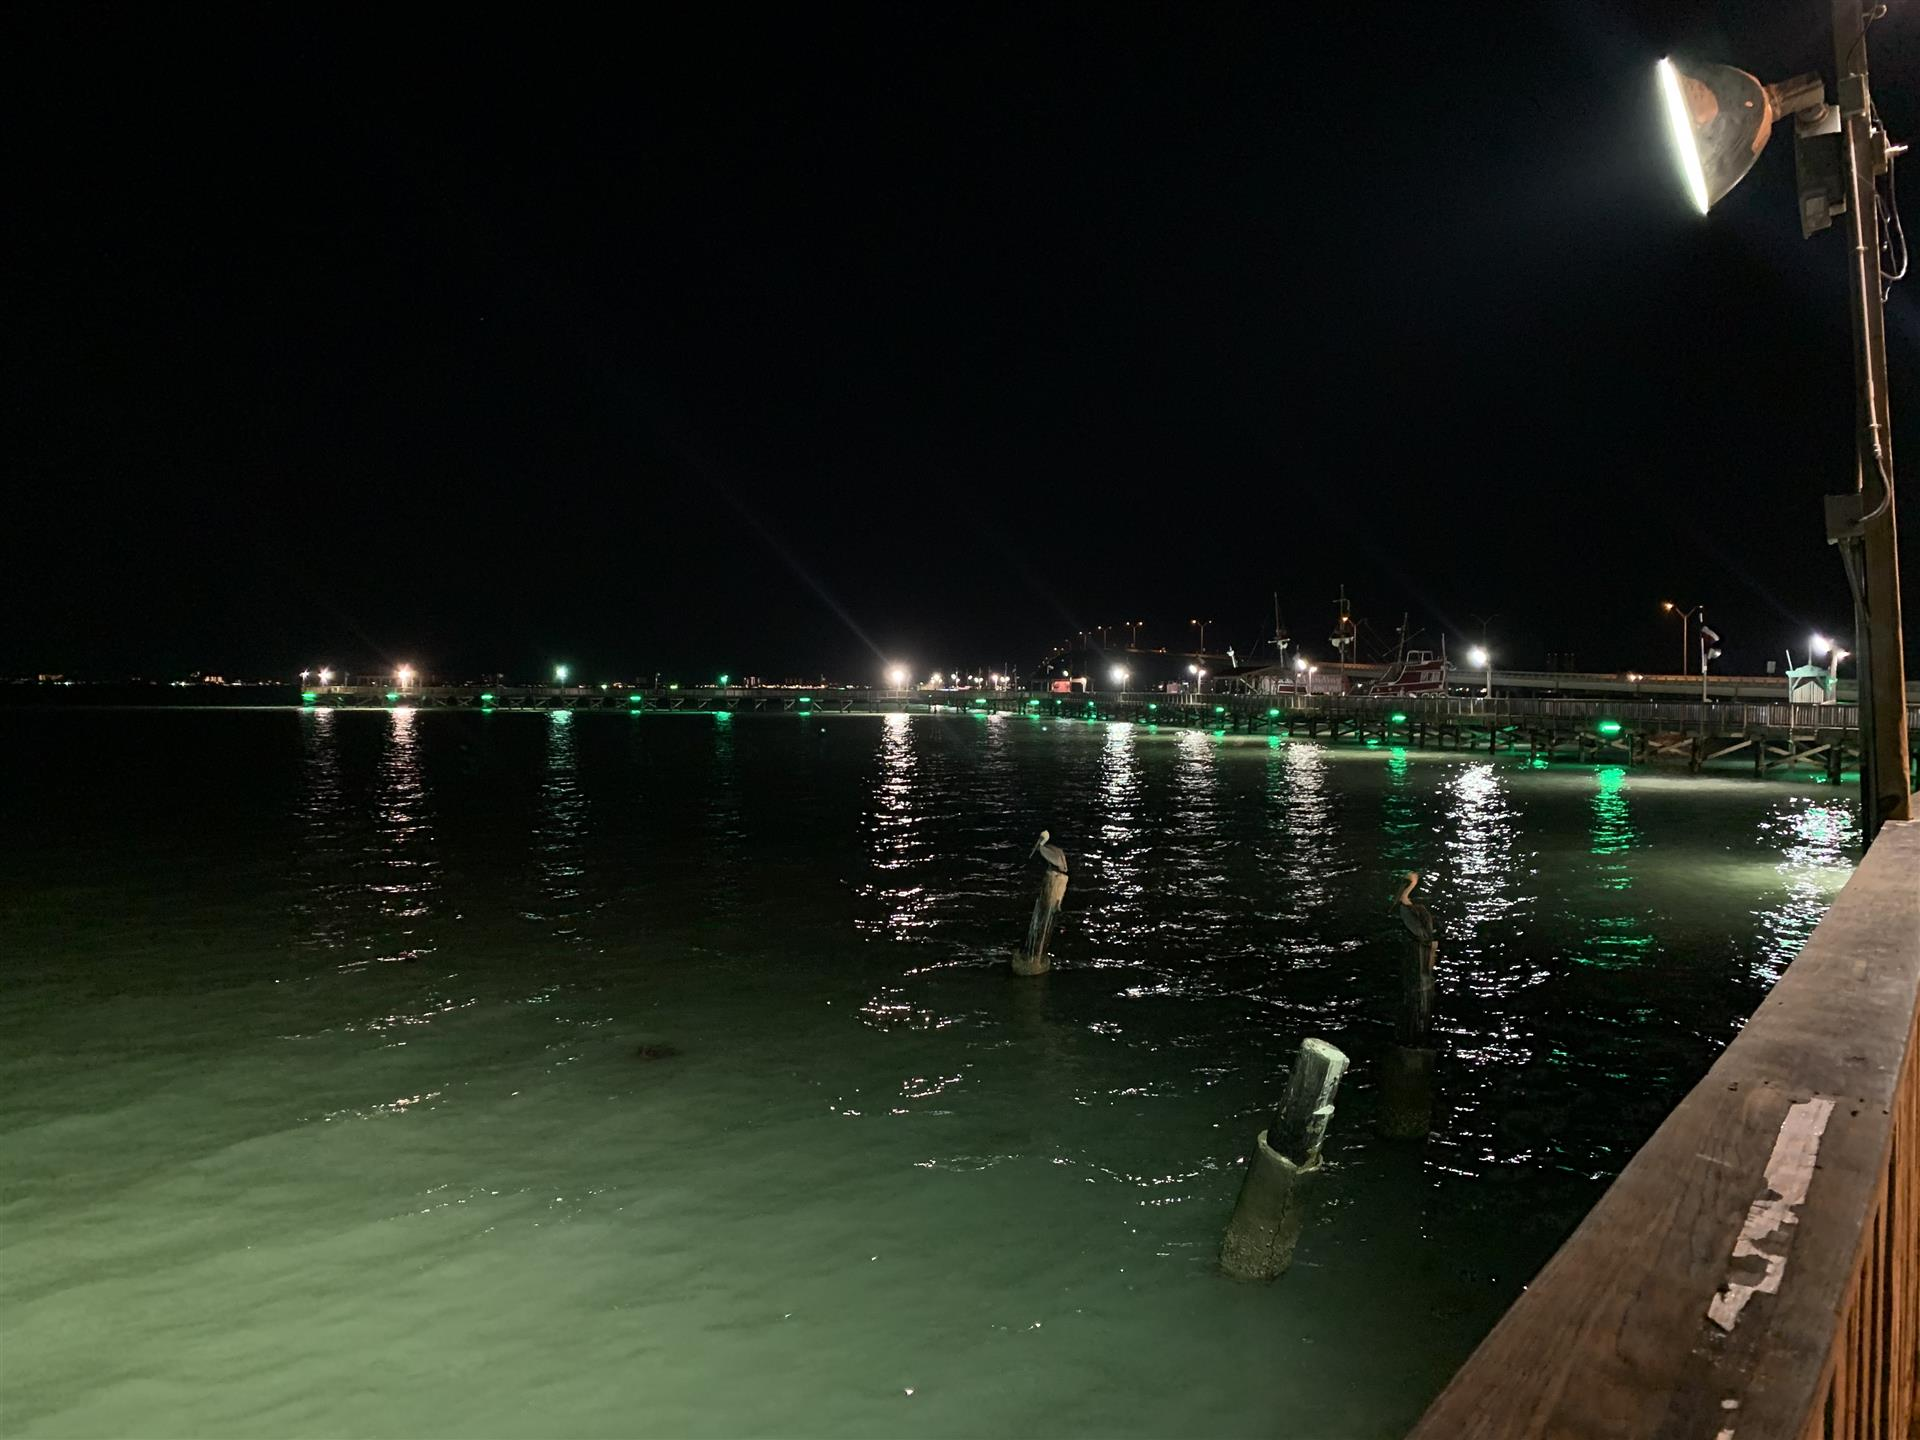 view of the water at night from the pier